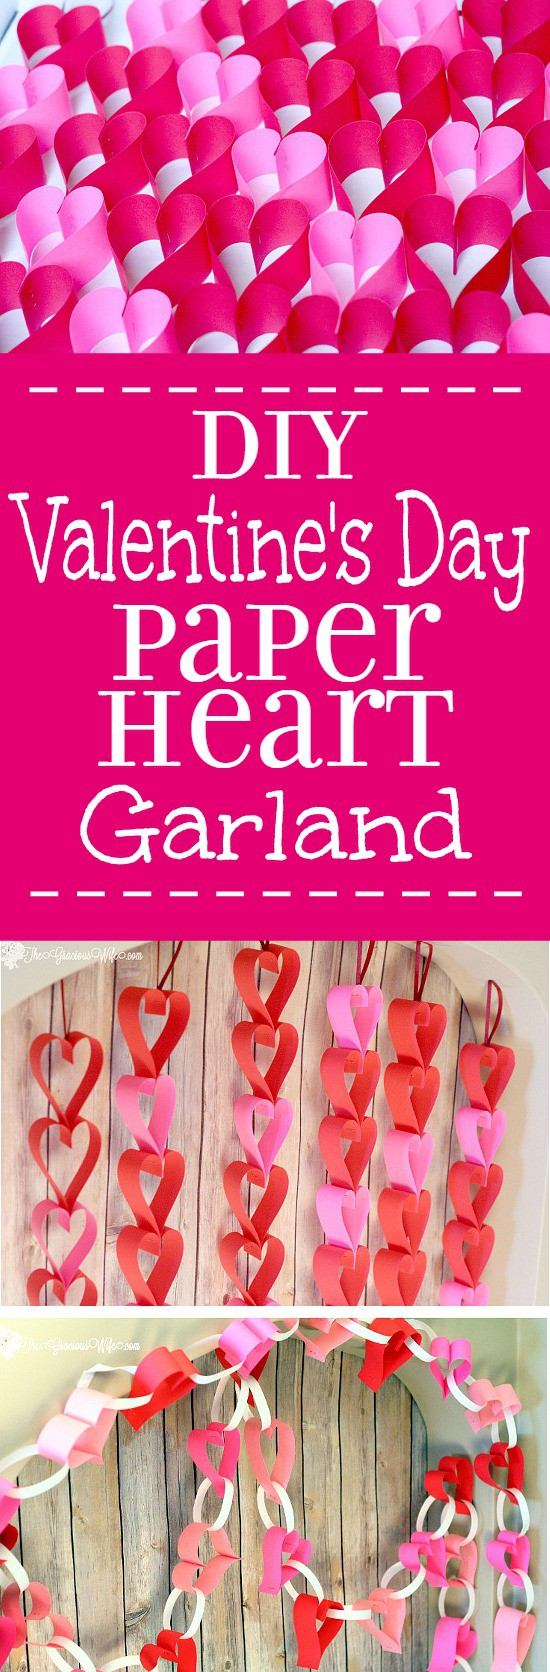 DIY Valentine's Day Heart Paper Garland - Easy and frugal DIY heart paper garlands for Valentine's Day decor. TWO different tutorials!